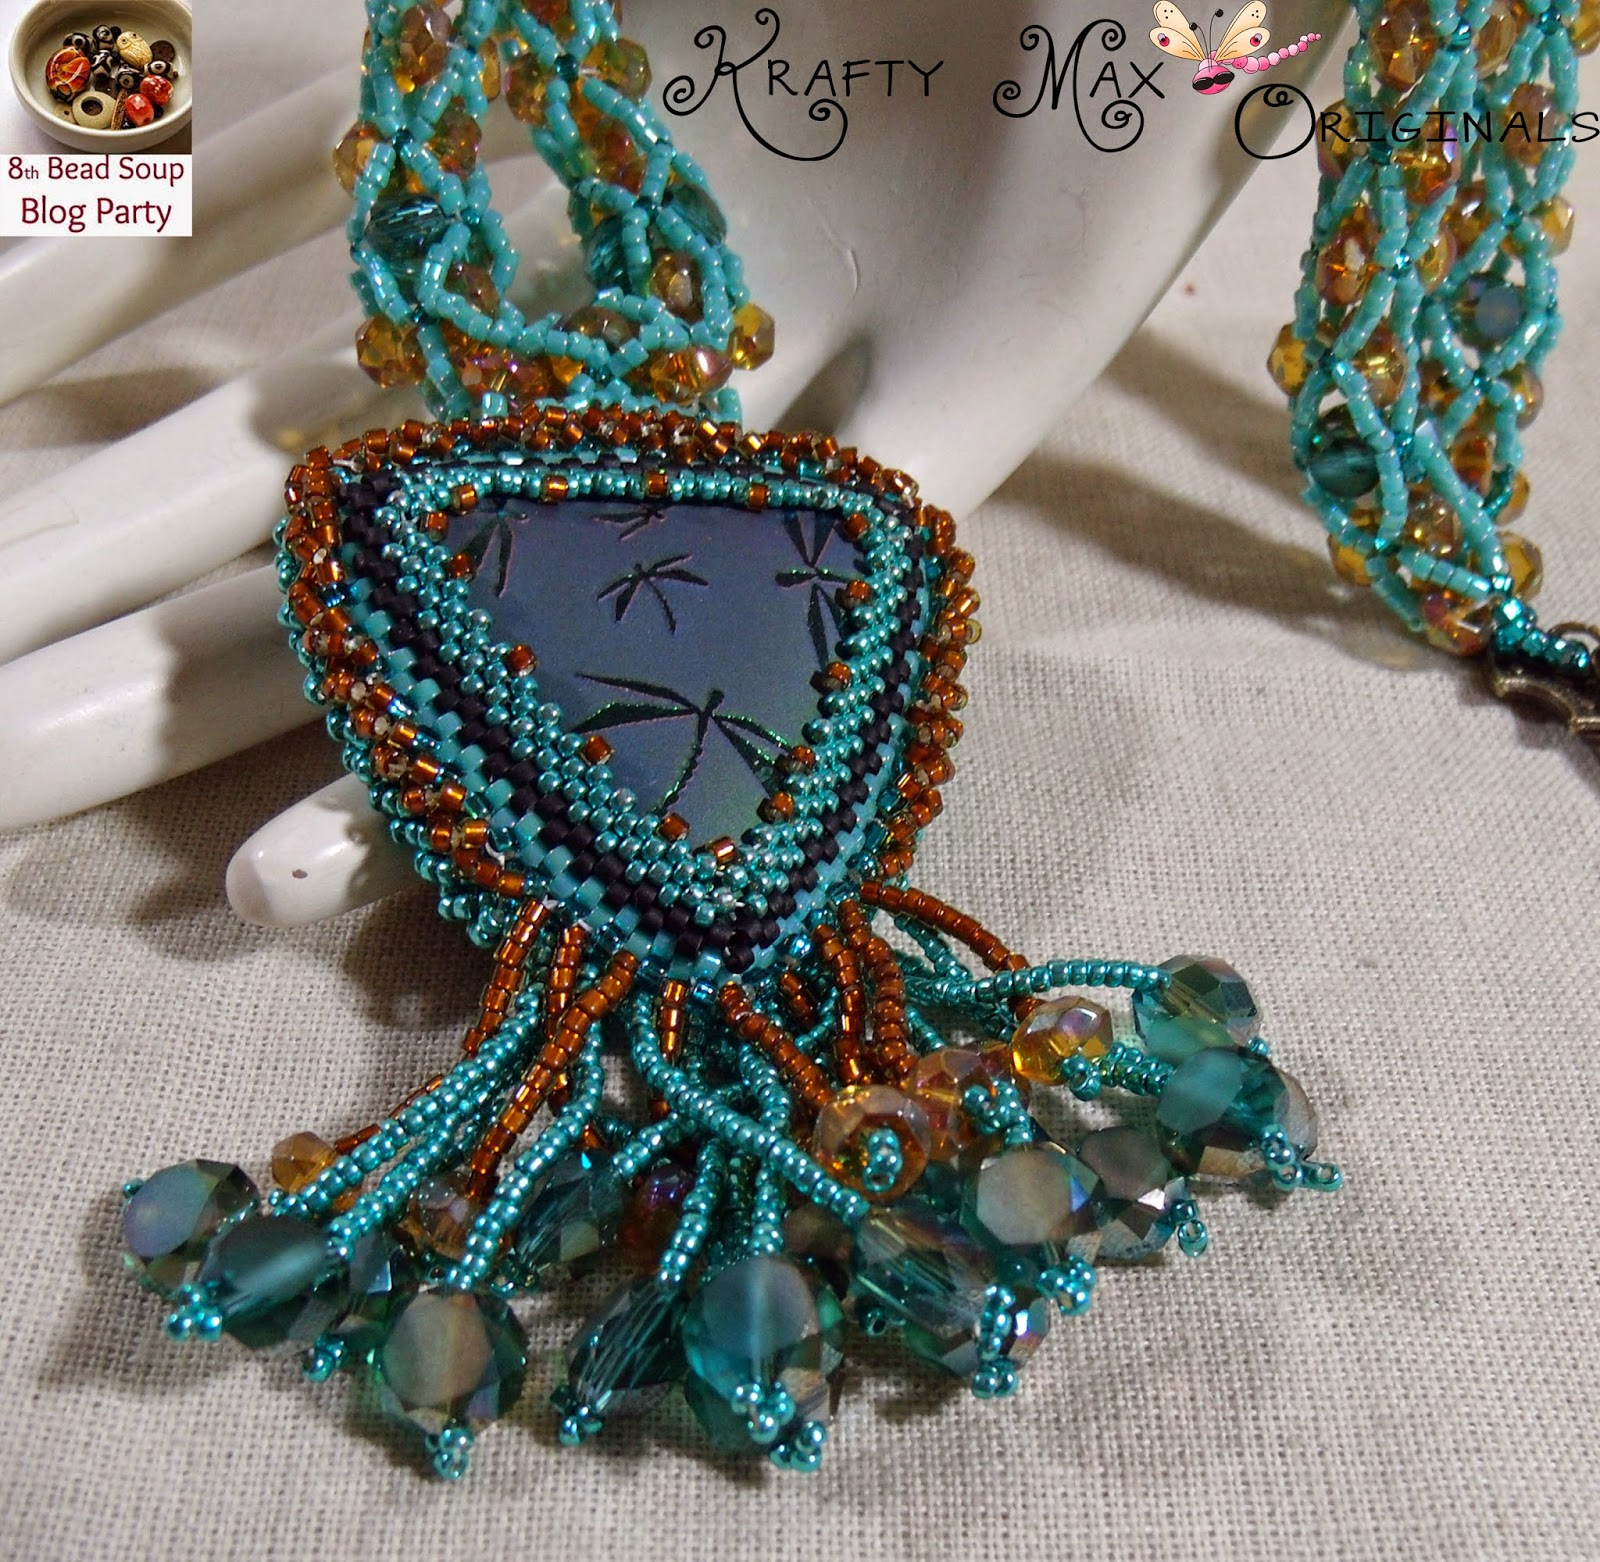 http://www.artfire.com/ext/shop/product_view/KraftyMax/9265070/8th_bead_soup_blog_party_-_teal_dragonfly_beadwoven_neclace_set/handmade/jewelry/sets/beadwoven